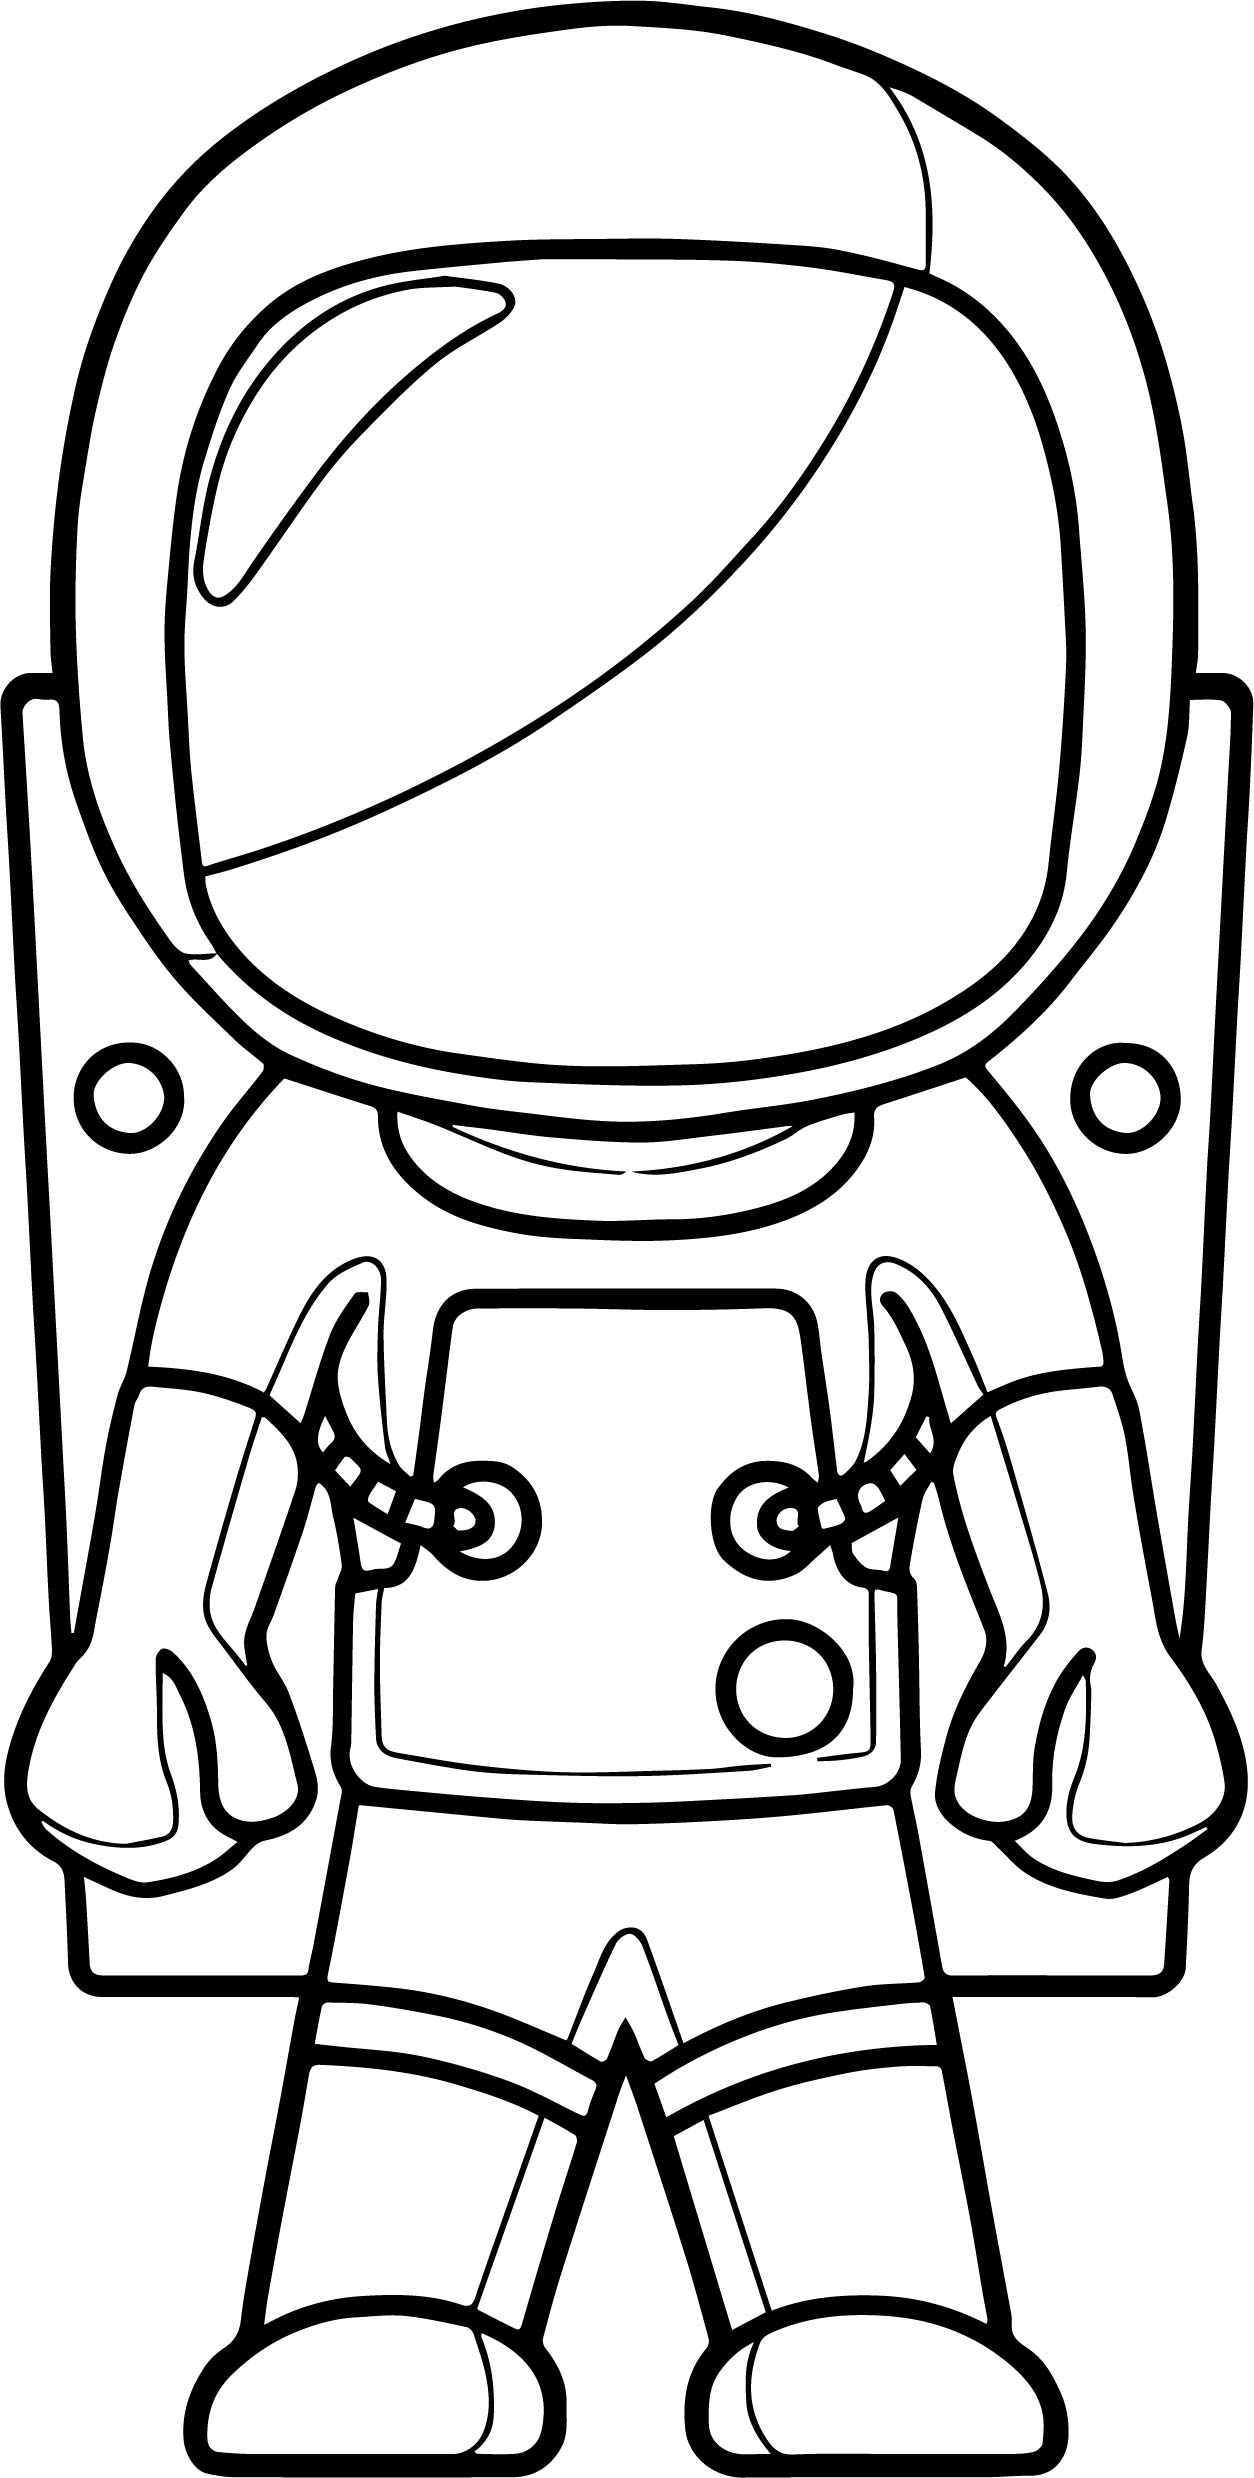 Closed Astronaut Coloring Page